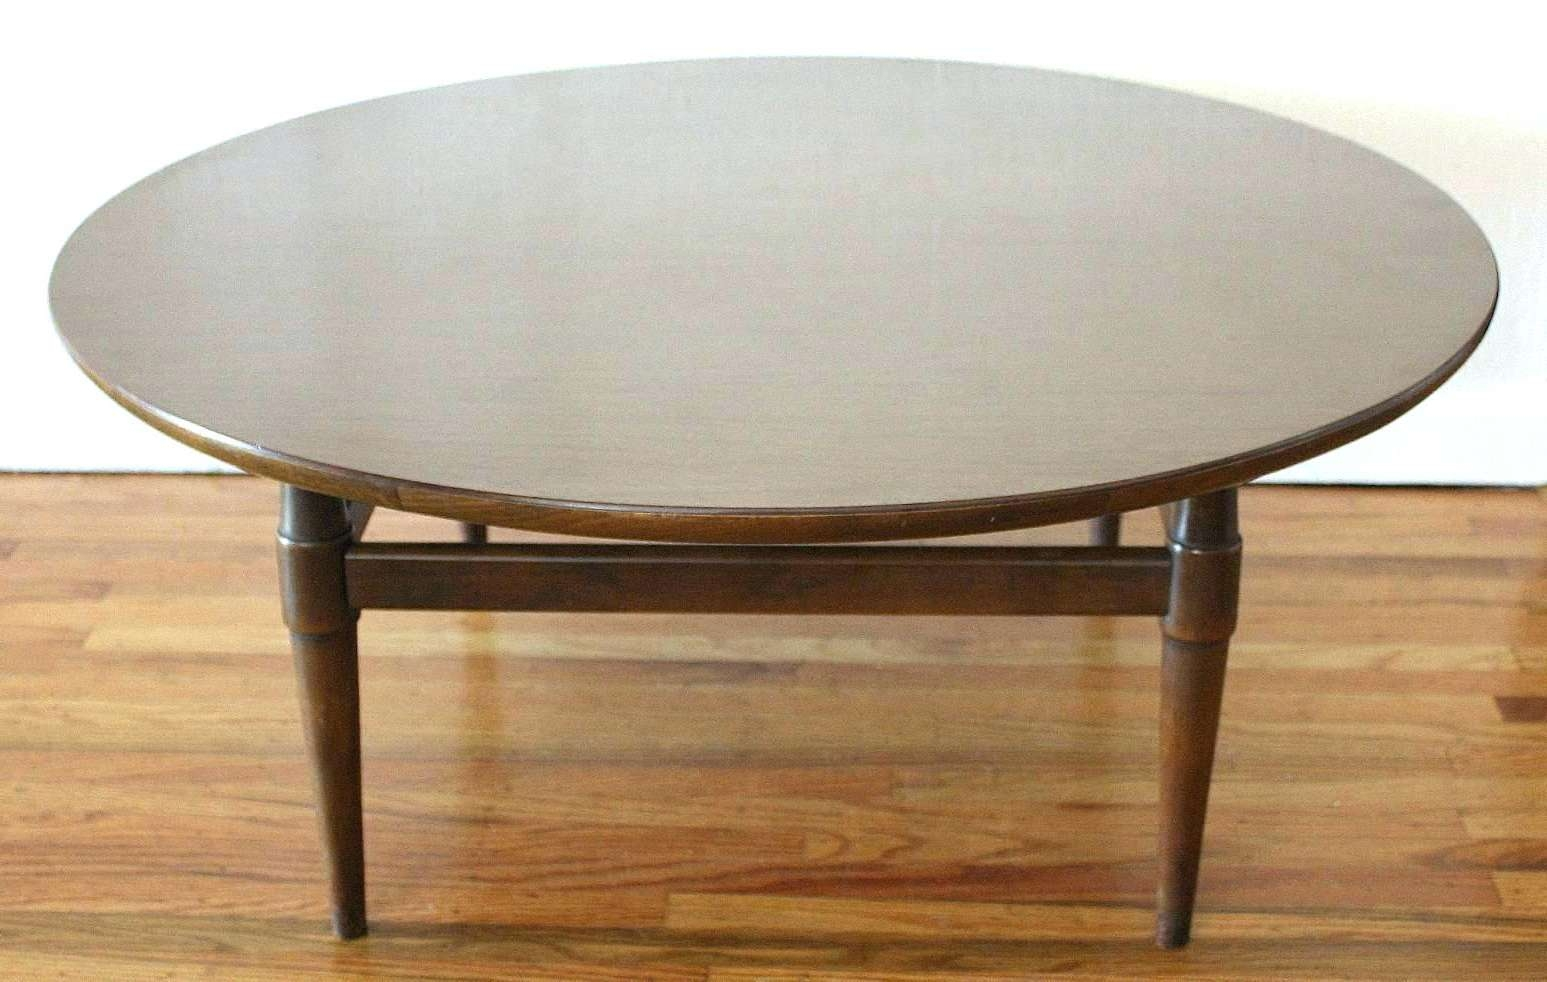 Widely Used Coffee Tables With Rounded Corners In Coffee Table : Rounded Corner Coffee Table With Corners Living (View 9 of 20)